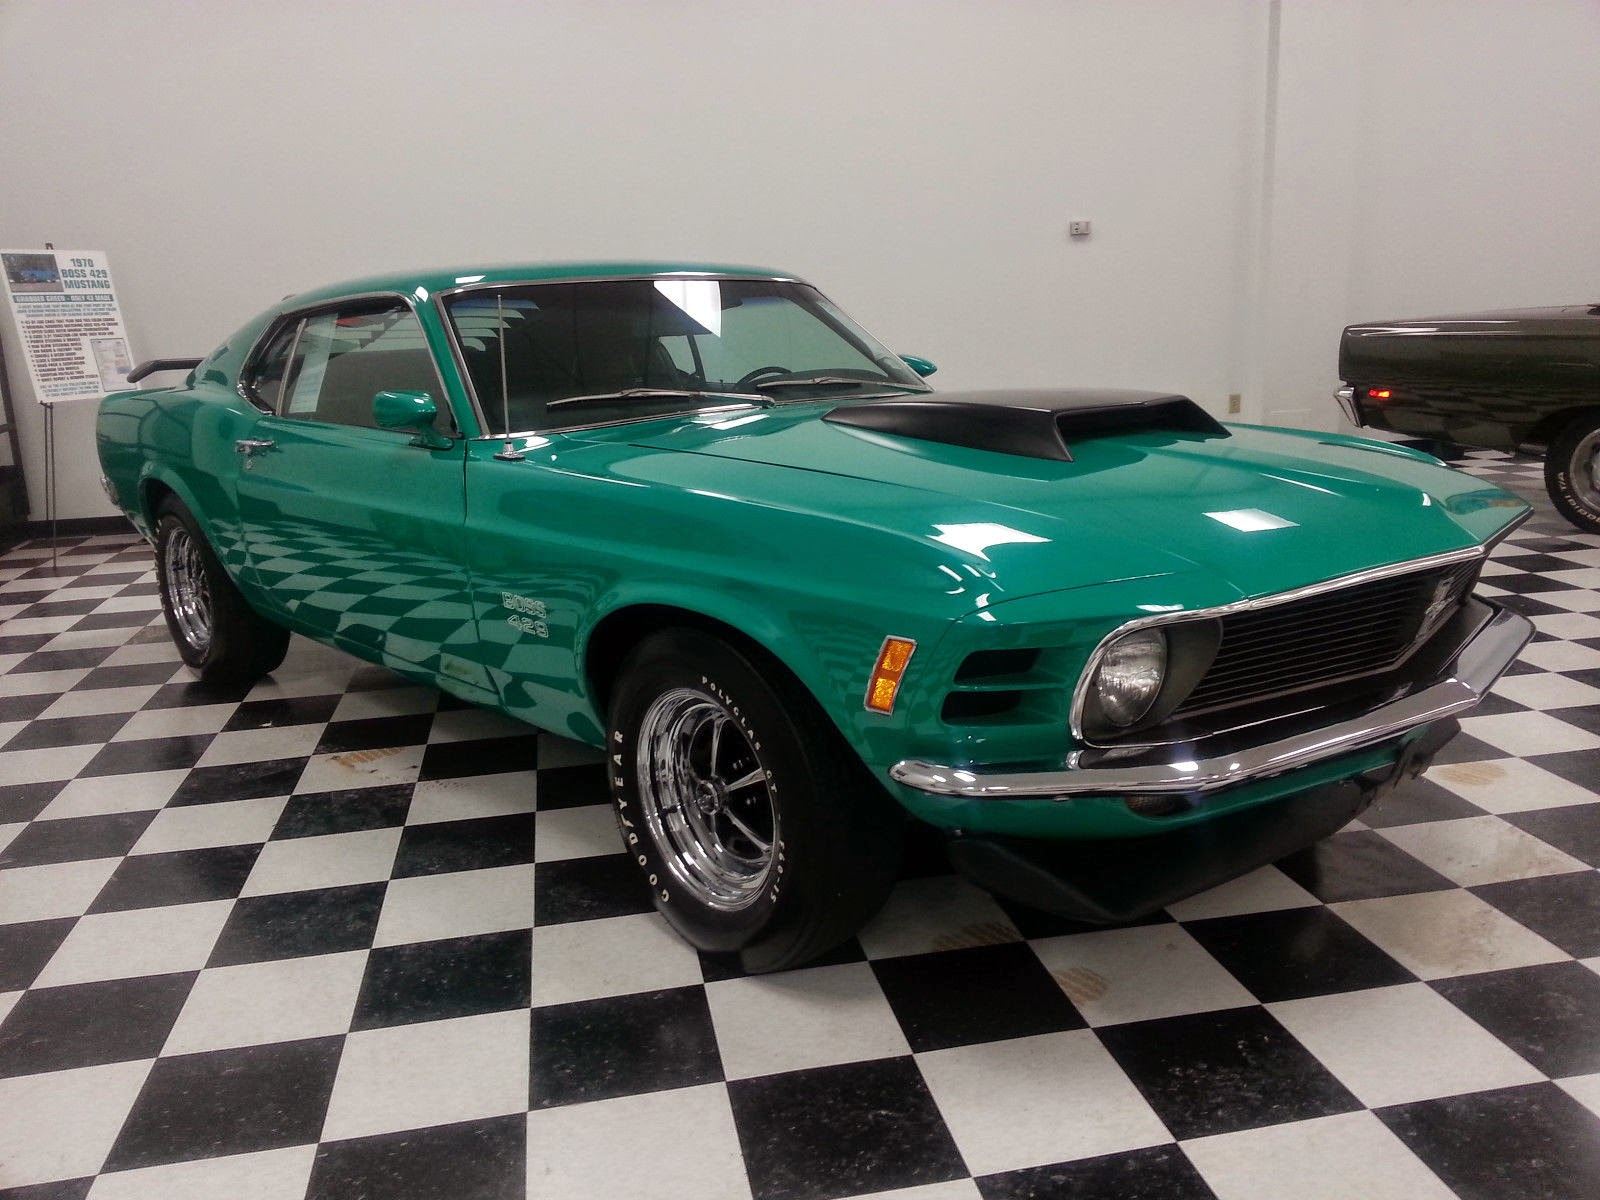 Up for sale this a rare one of 43,1970 Ford Mustang Boss 429 Grabber